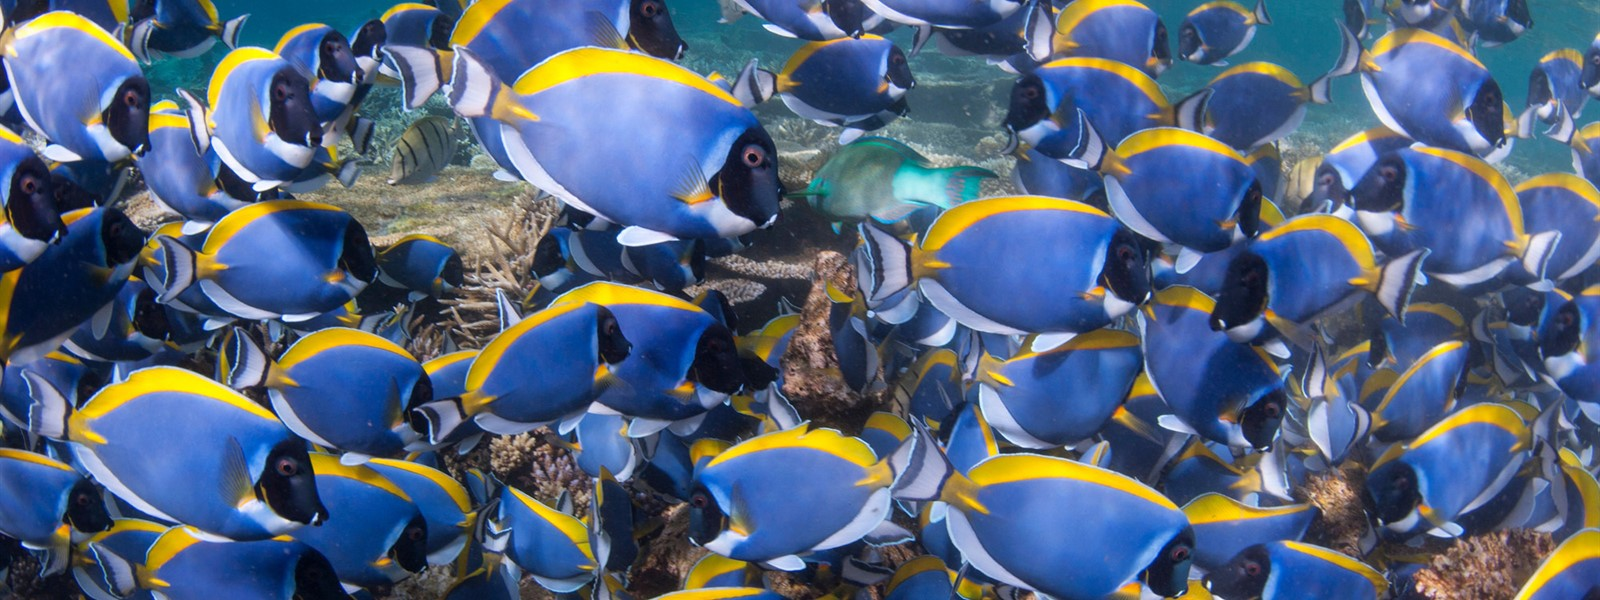 Picture of a shoal of tropical fish.